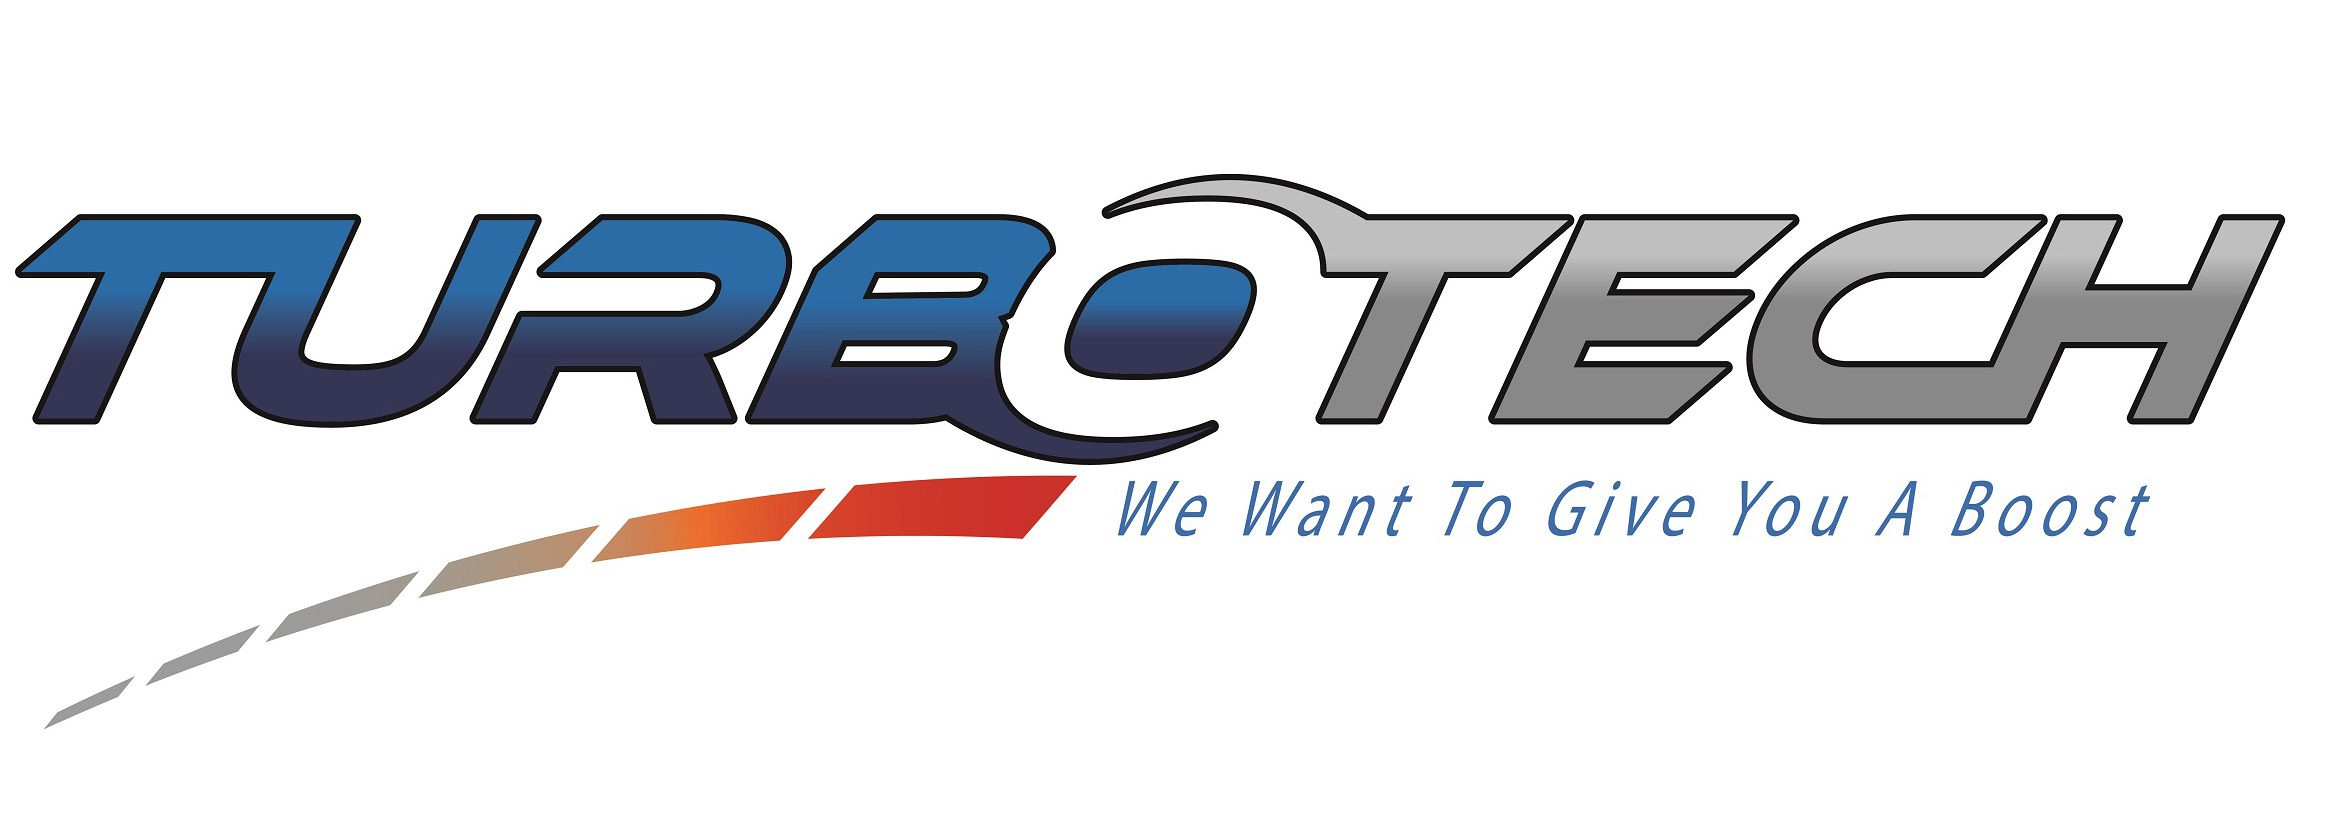 Turbotech QLD